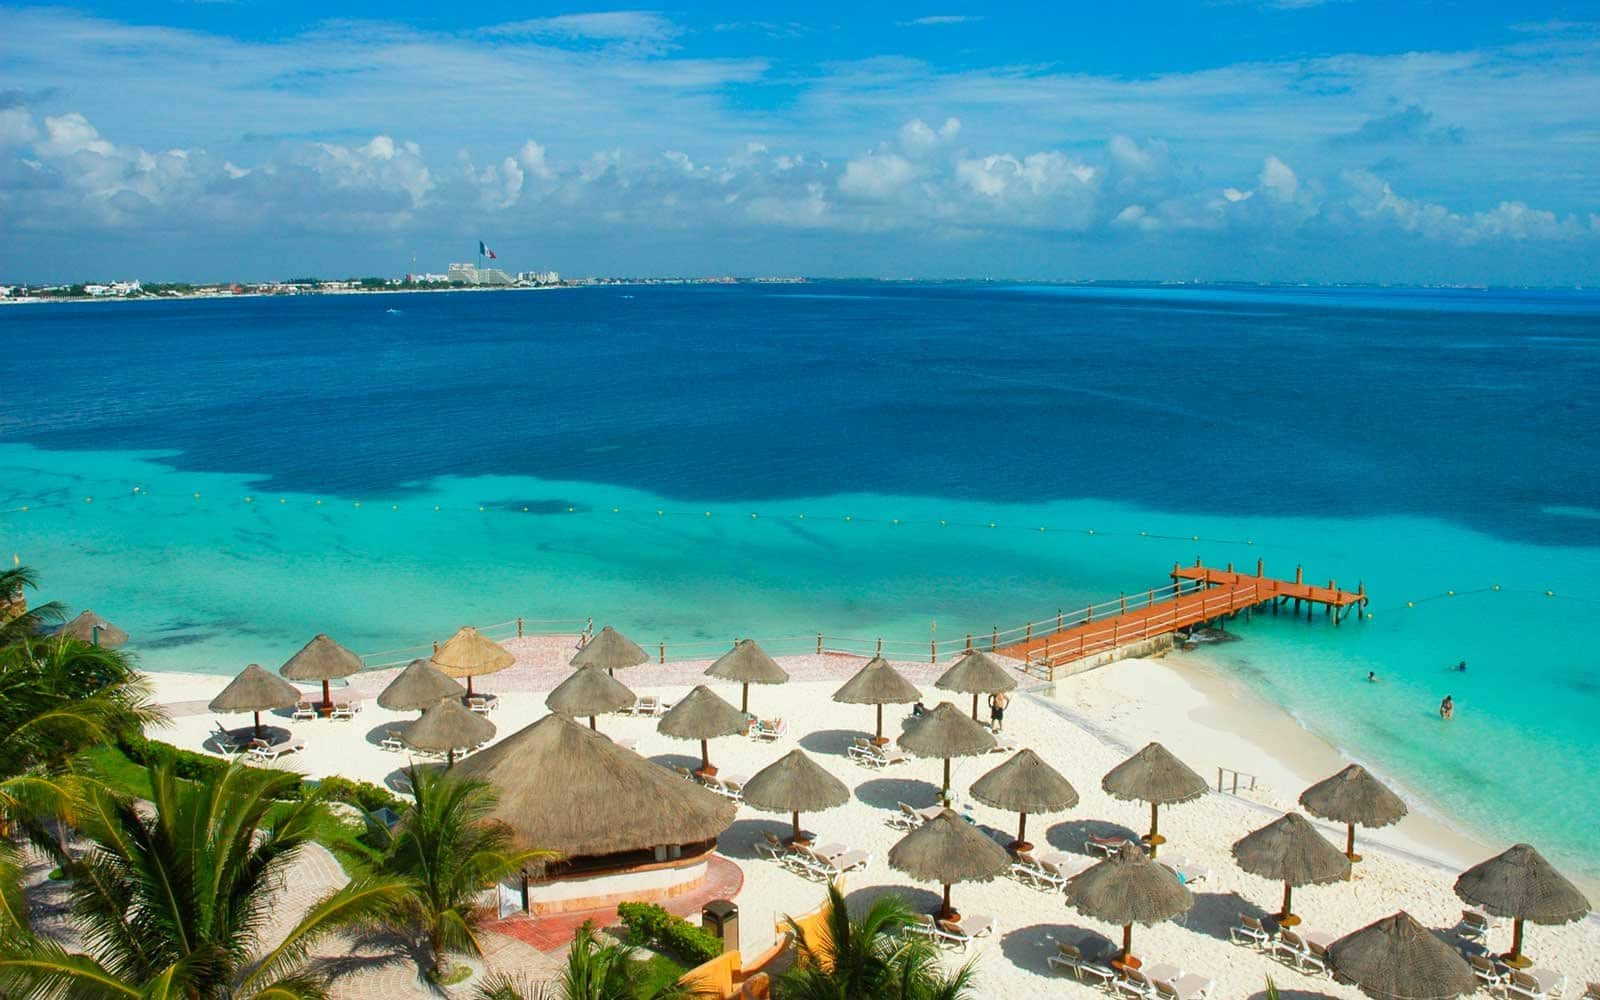 Washington DC to Cancun MX $211 RT Nonstop Airfares on United Airlines Main Cabin (Limited Travel April - June 2021)